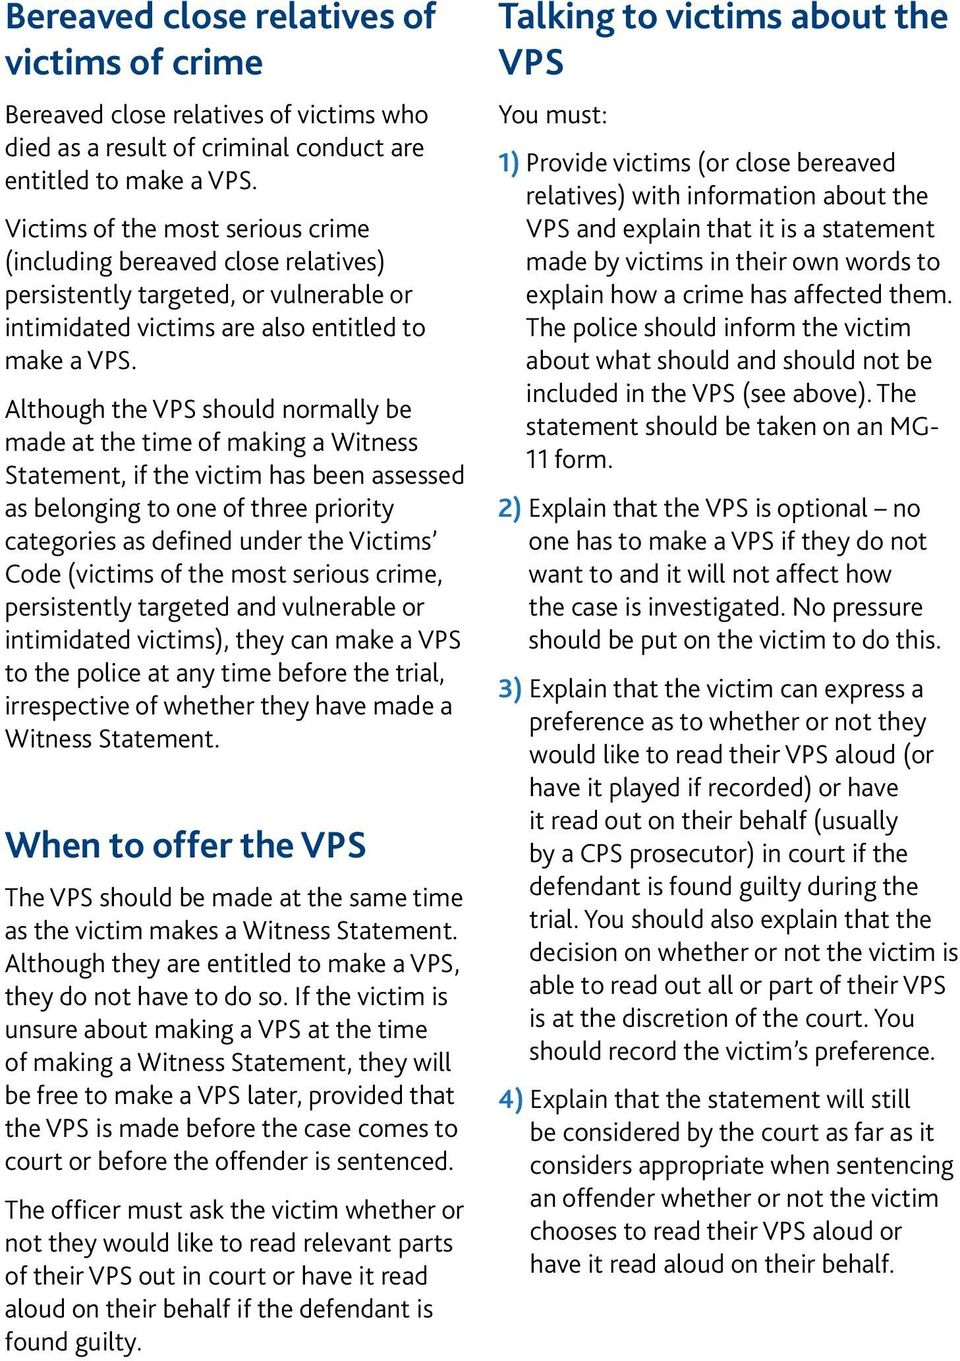 victim personal statement (vps) leaflet